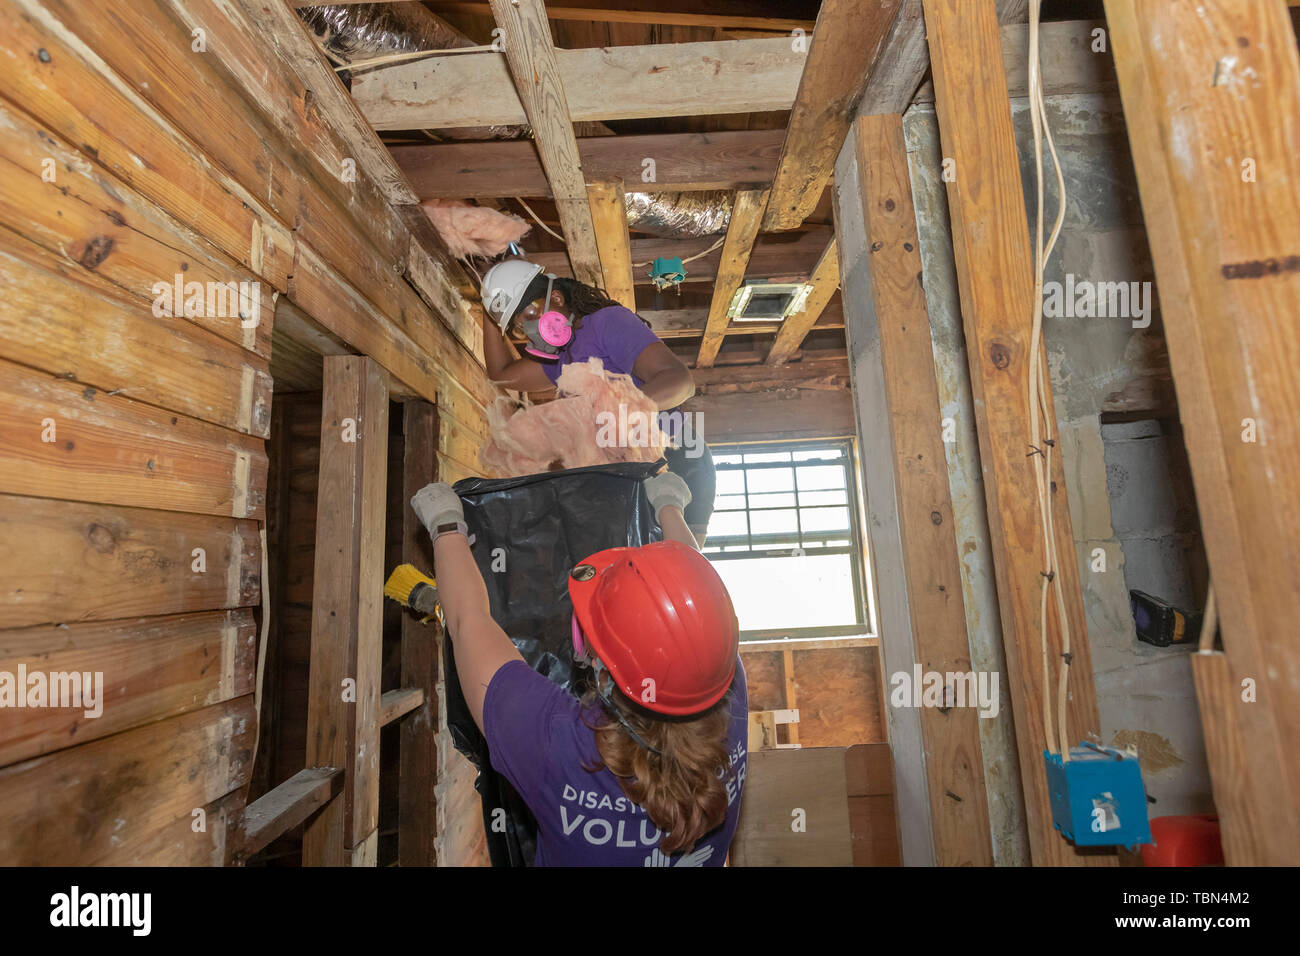 Panama City, Florida - Volunteers repair a home damaged when Hurricane Michael hit the Florida Panhandle. Extensive damage to roofs during the Categor - Stock Image